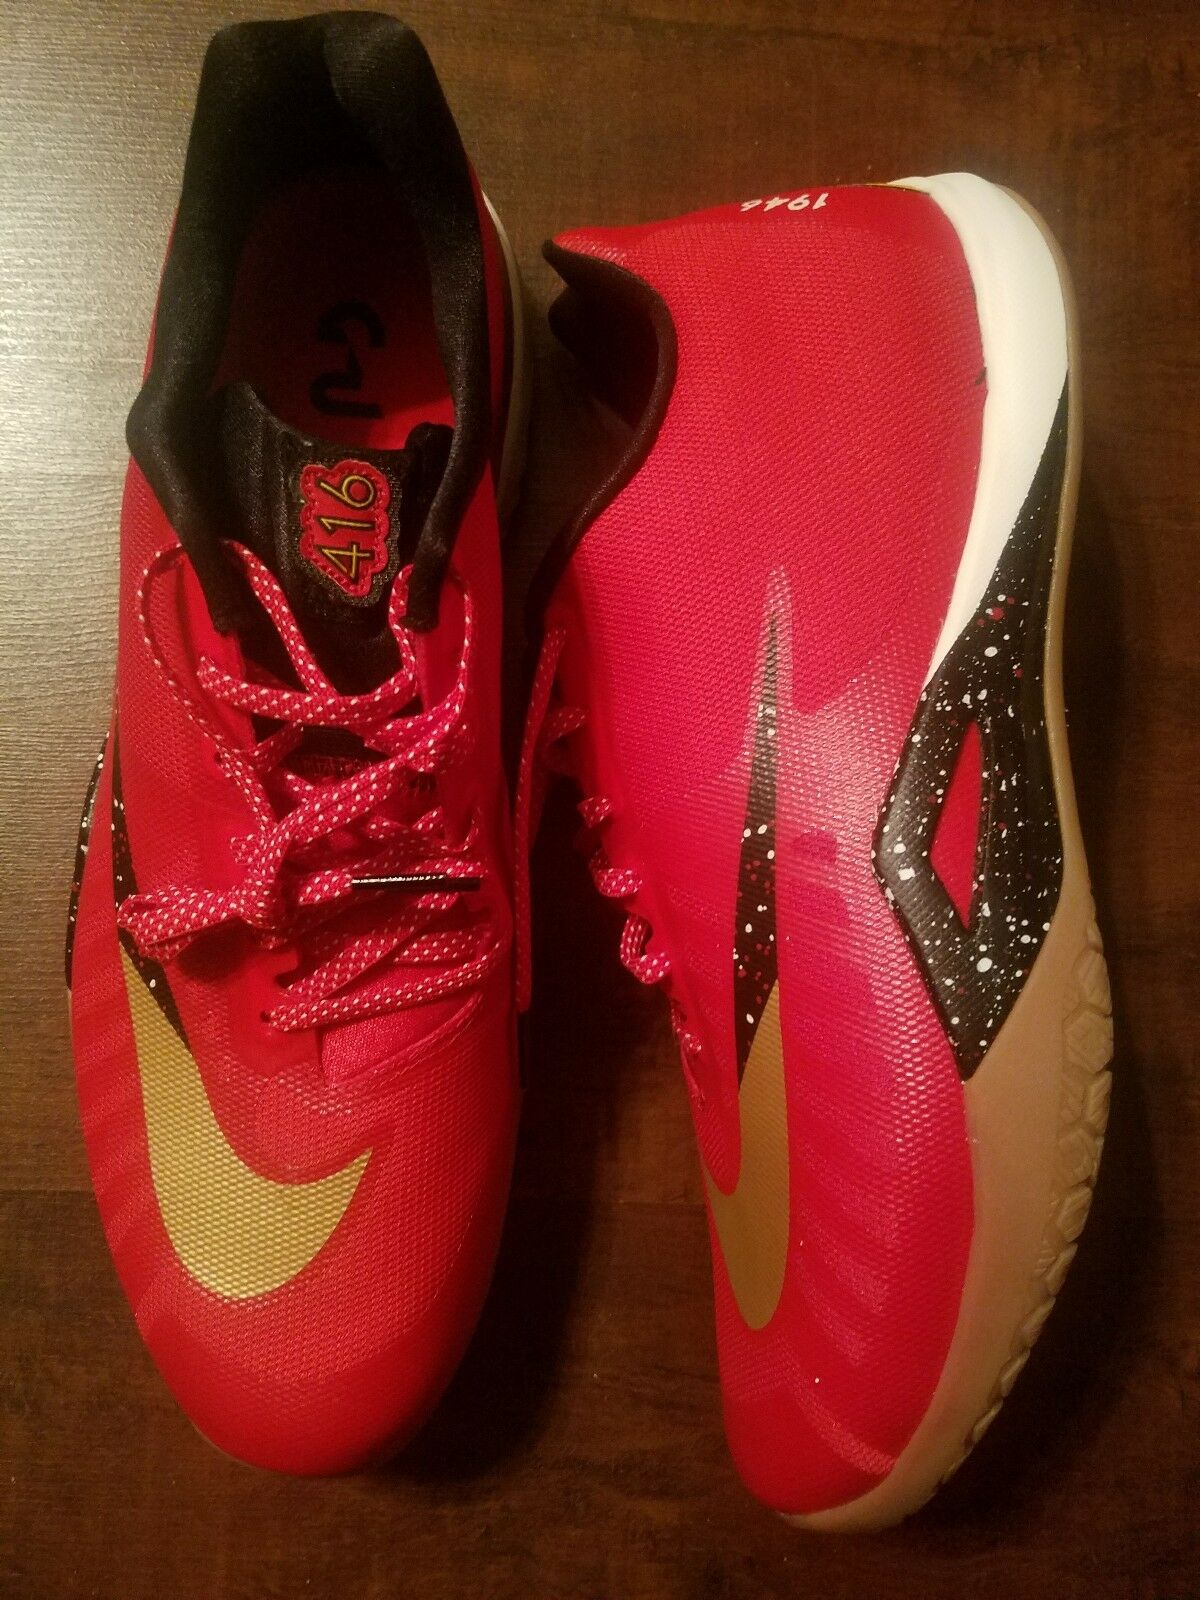 paul george nike rares hommes hyperlive all star game 670 820230 670 game taille 13 06c31c